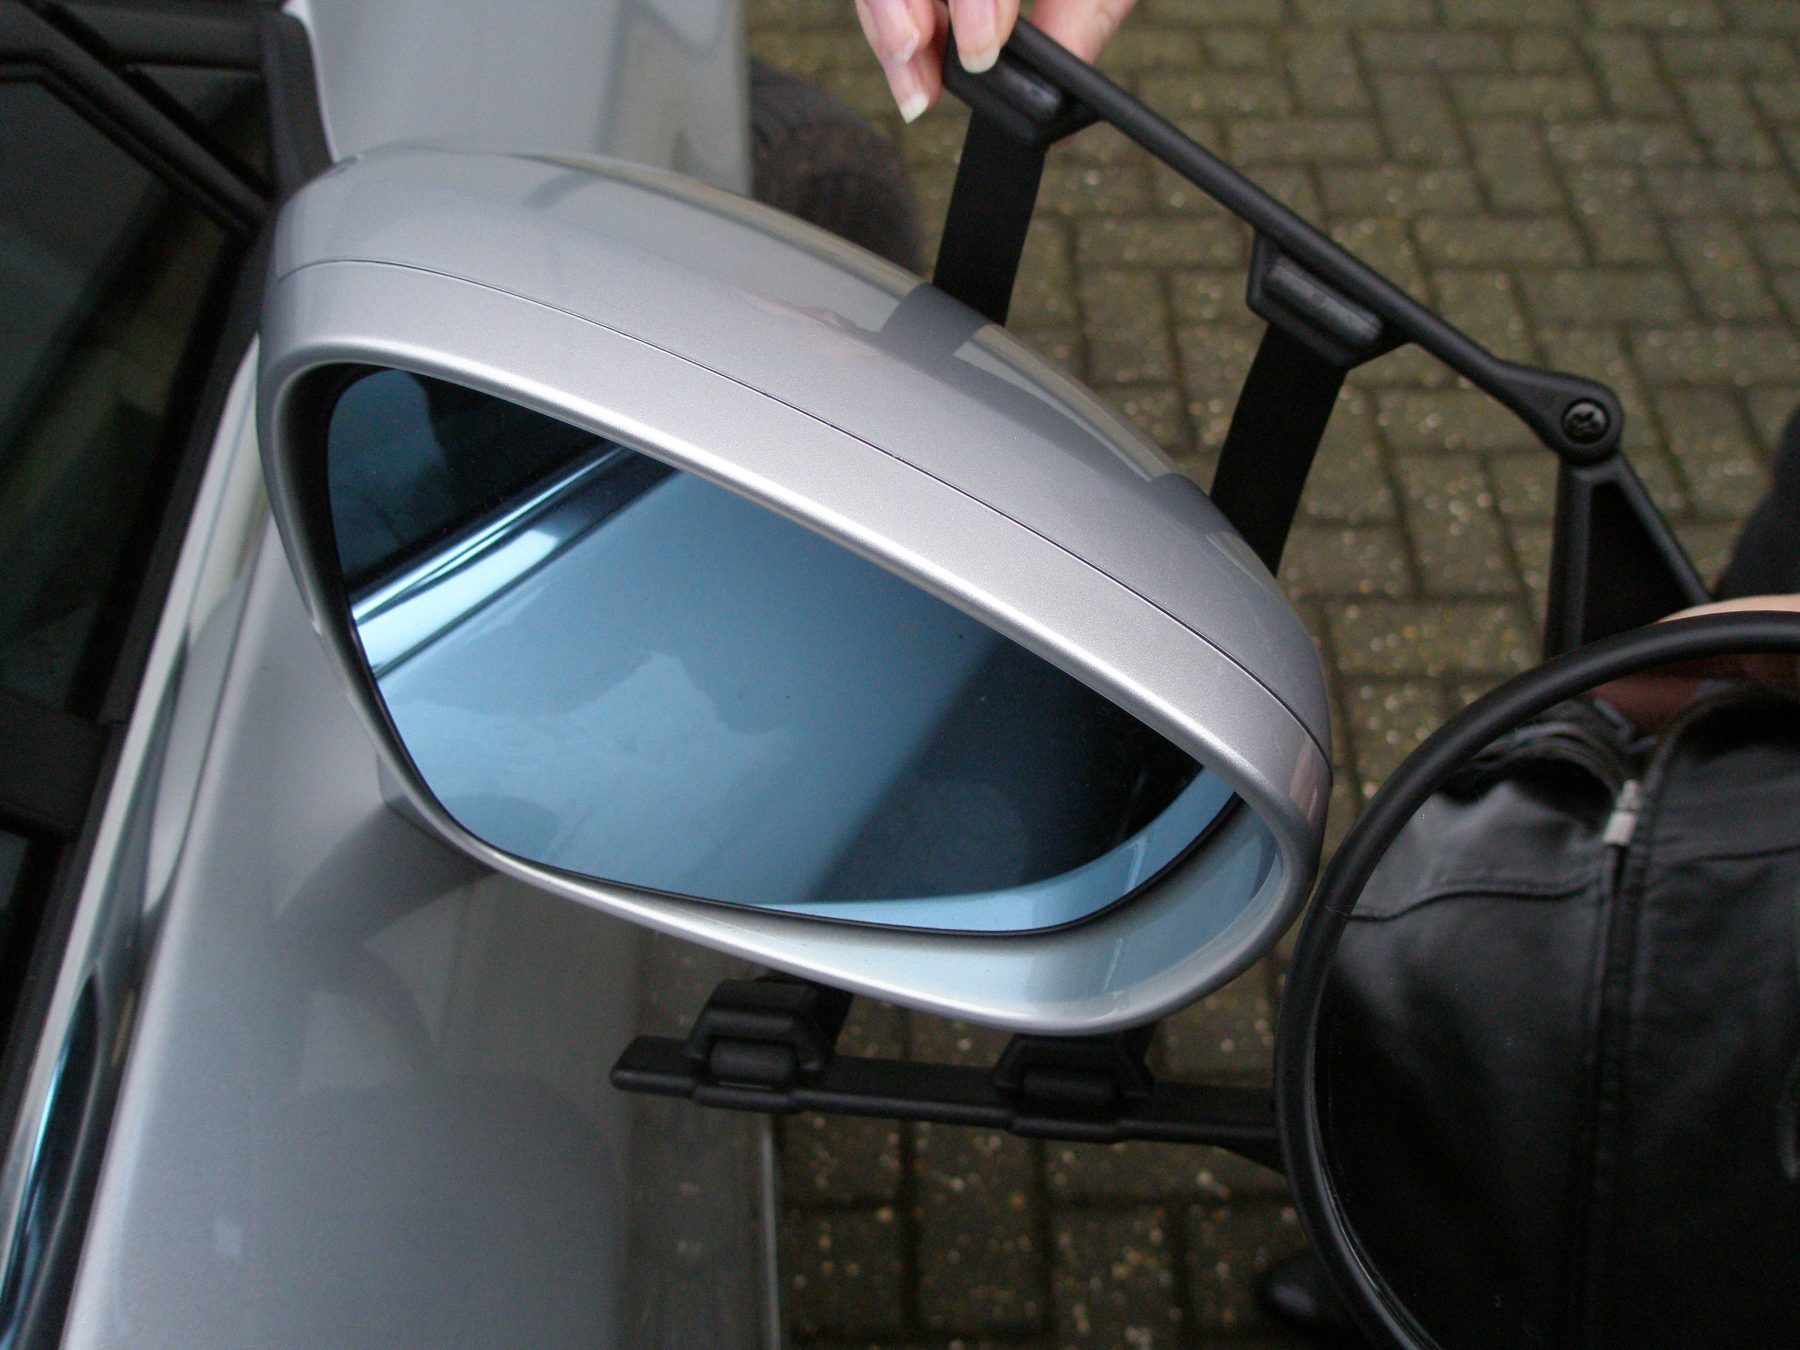 Car E Marked Caravan Trailer /& Towing Convex Glass Safety Wing Mirror Extension